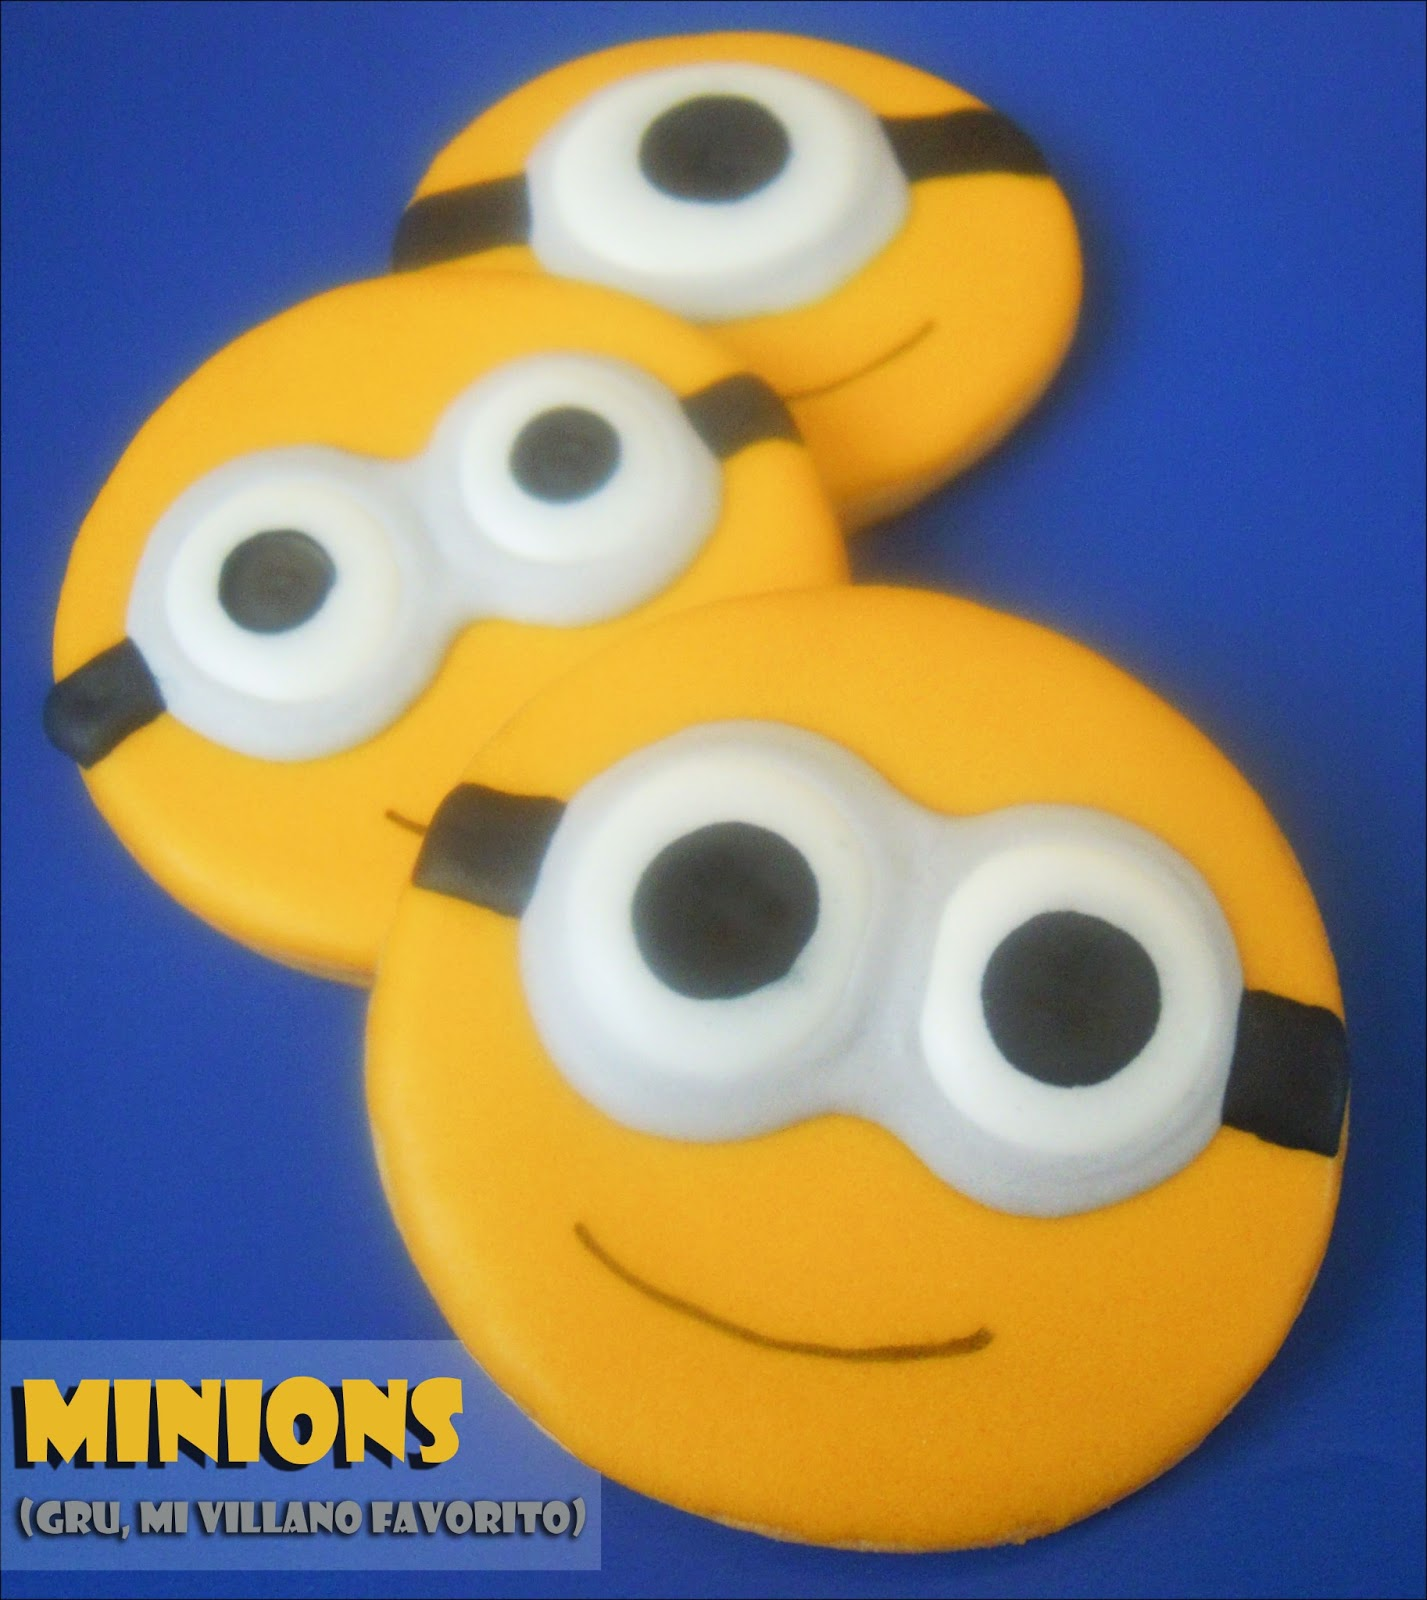 Tutorial De Galletas Decoradas Con Glasa Galletas Minions (gru, Mi Villano Favorito) - Cupcake Creativo